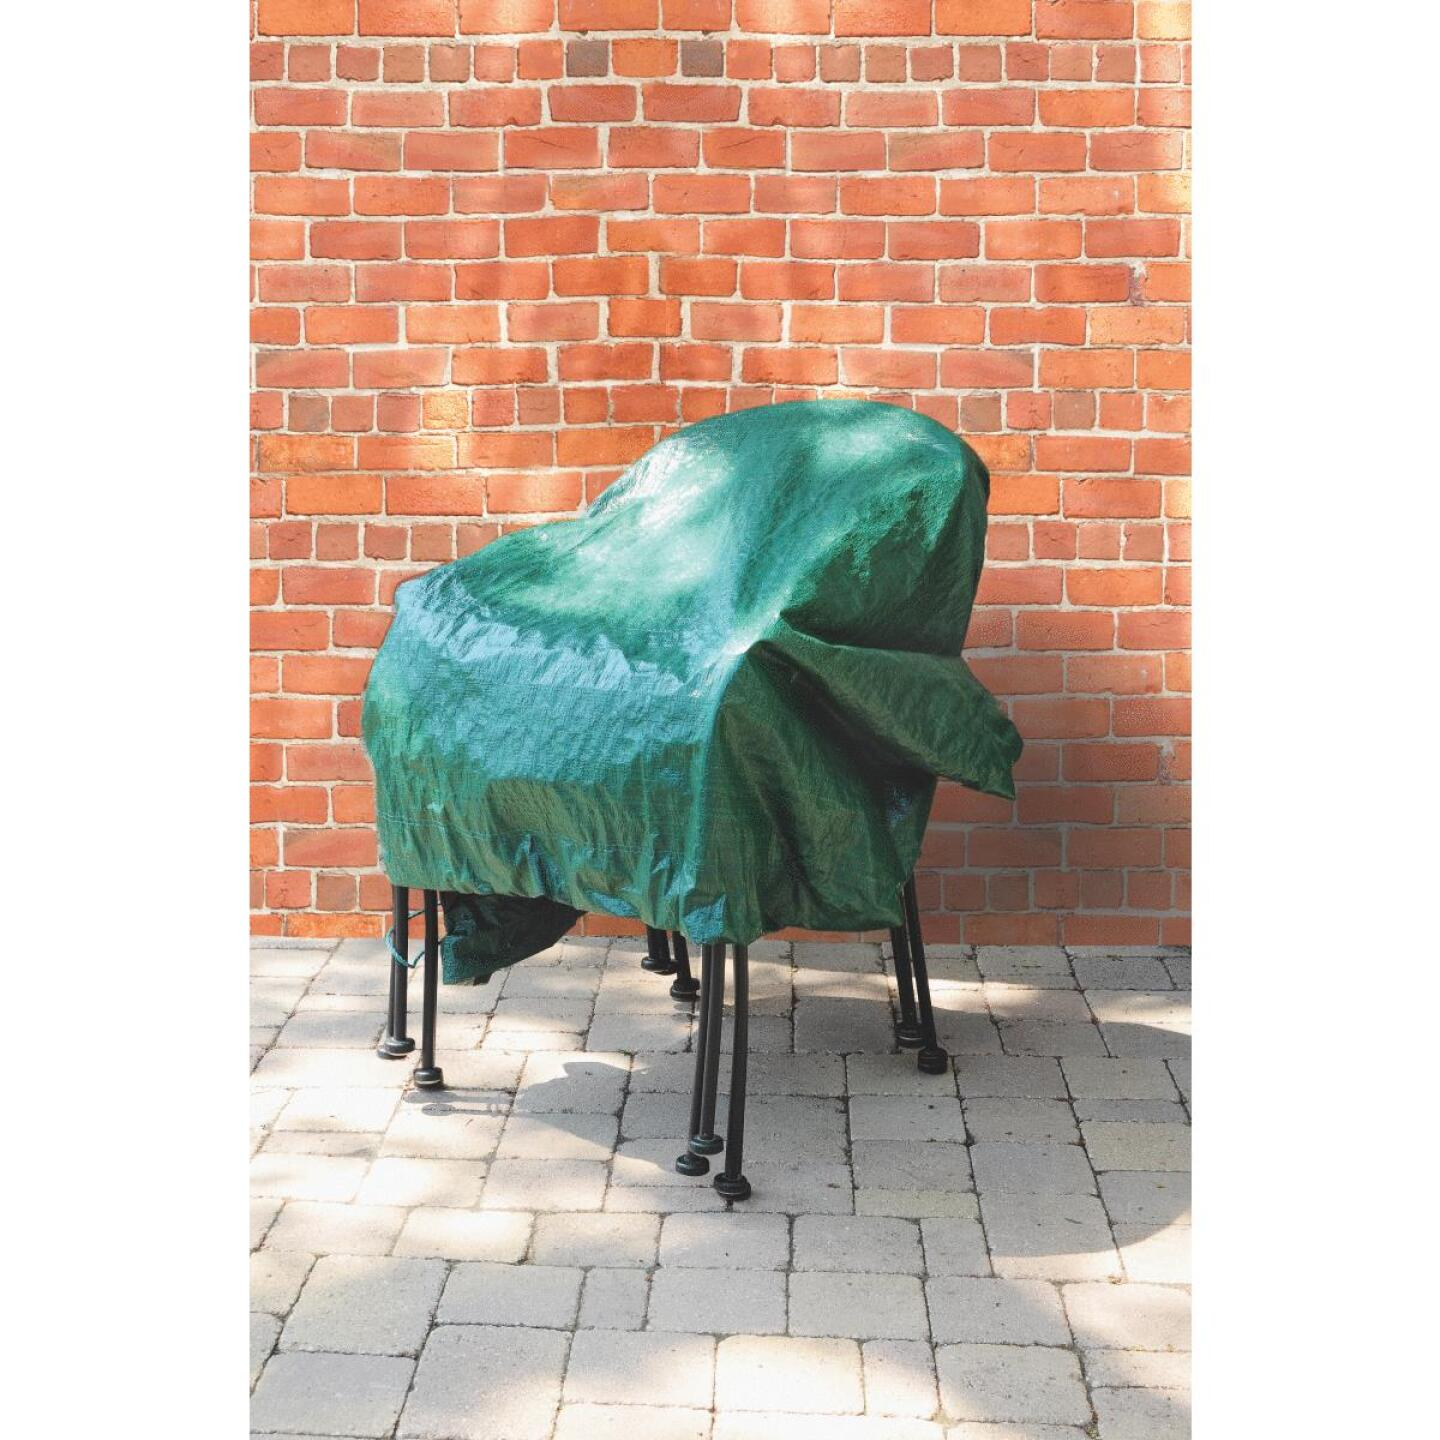 Do it 6 Ft. x 6 Ft. Poly Fabric Green Lawn Cleanup Tarp Image 7